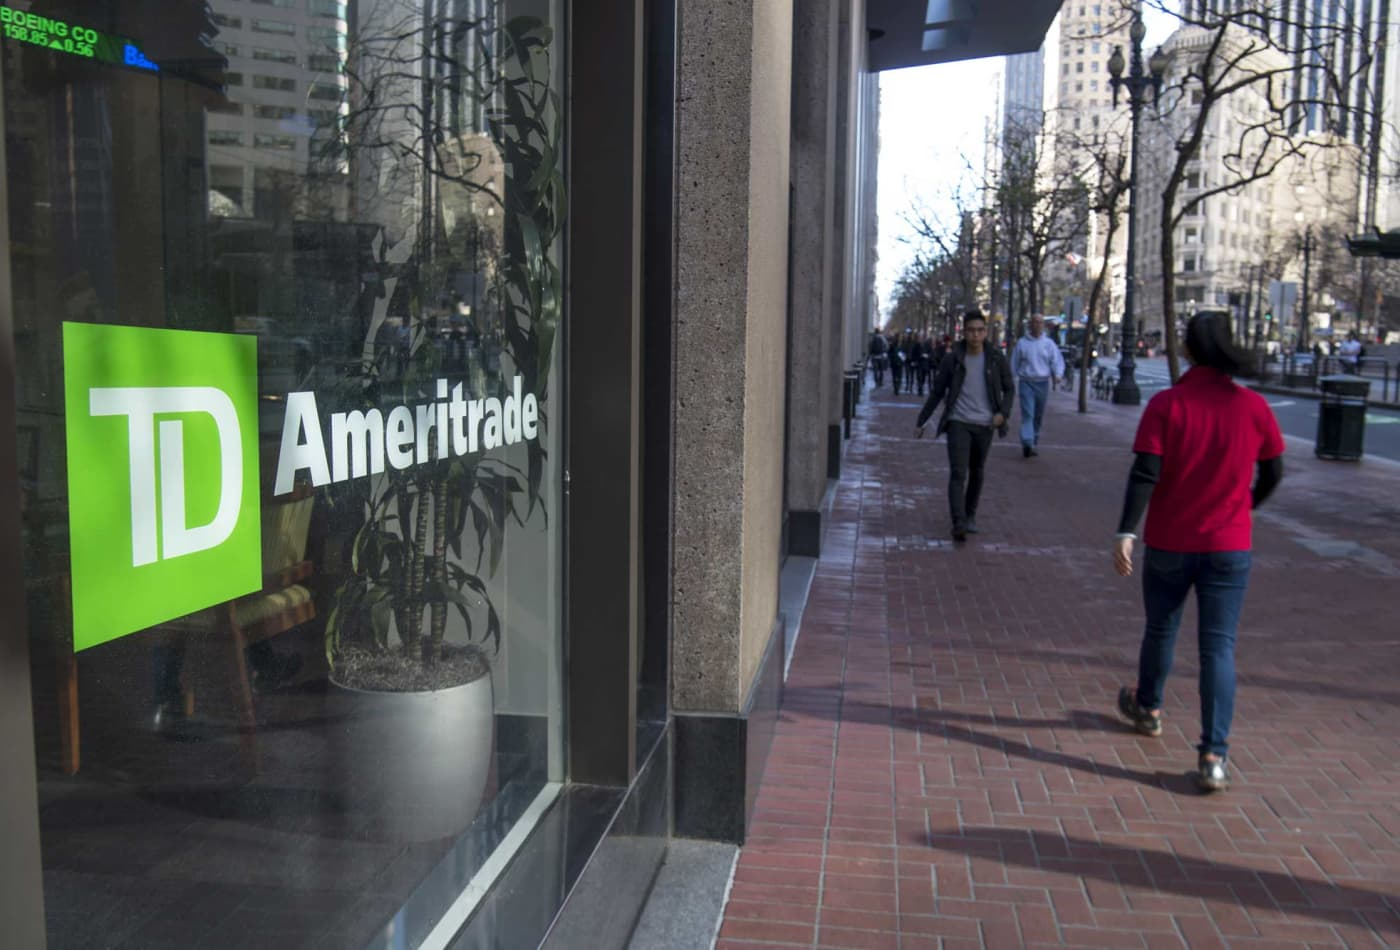 TD Ameritrade and other brokerages' shares tank after Interactive Brokers unveils service offering commission-free stock trades